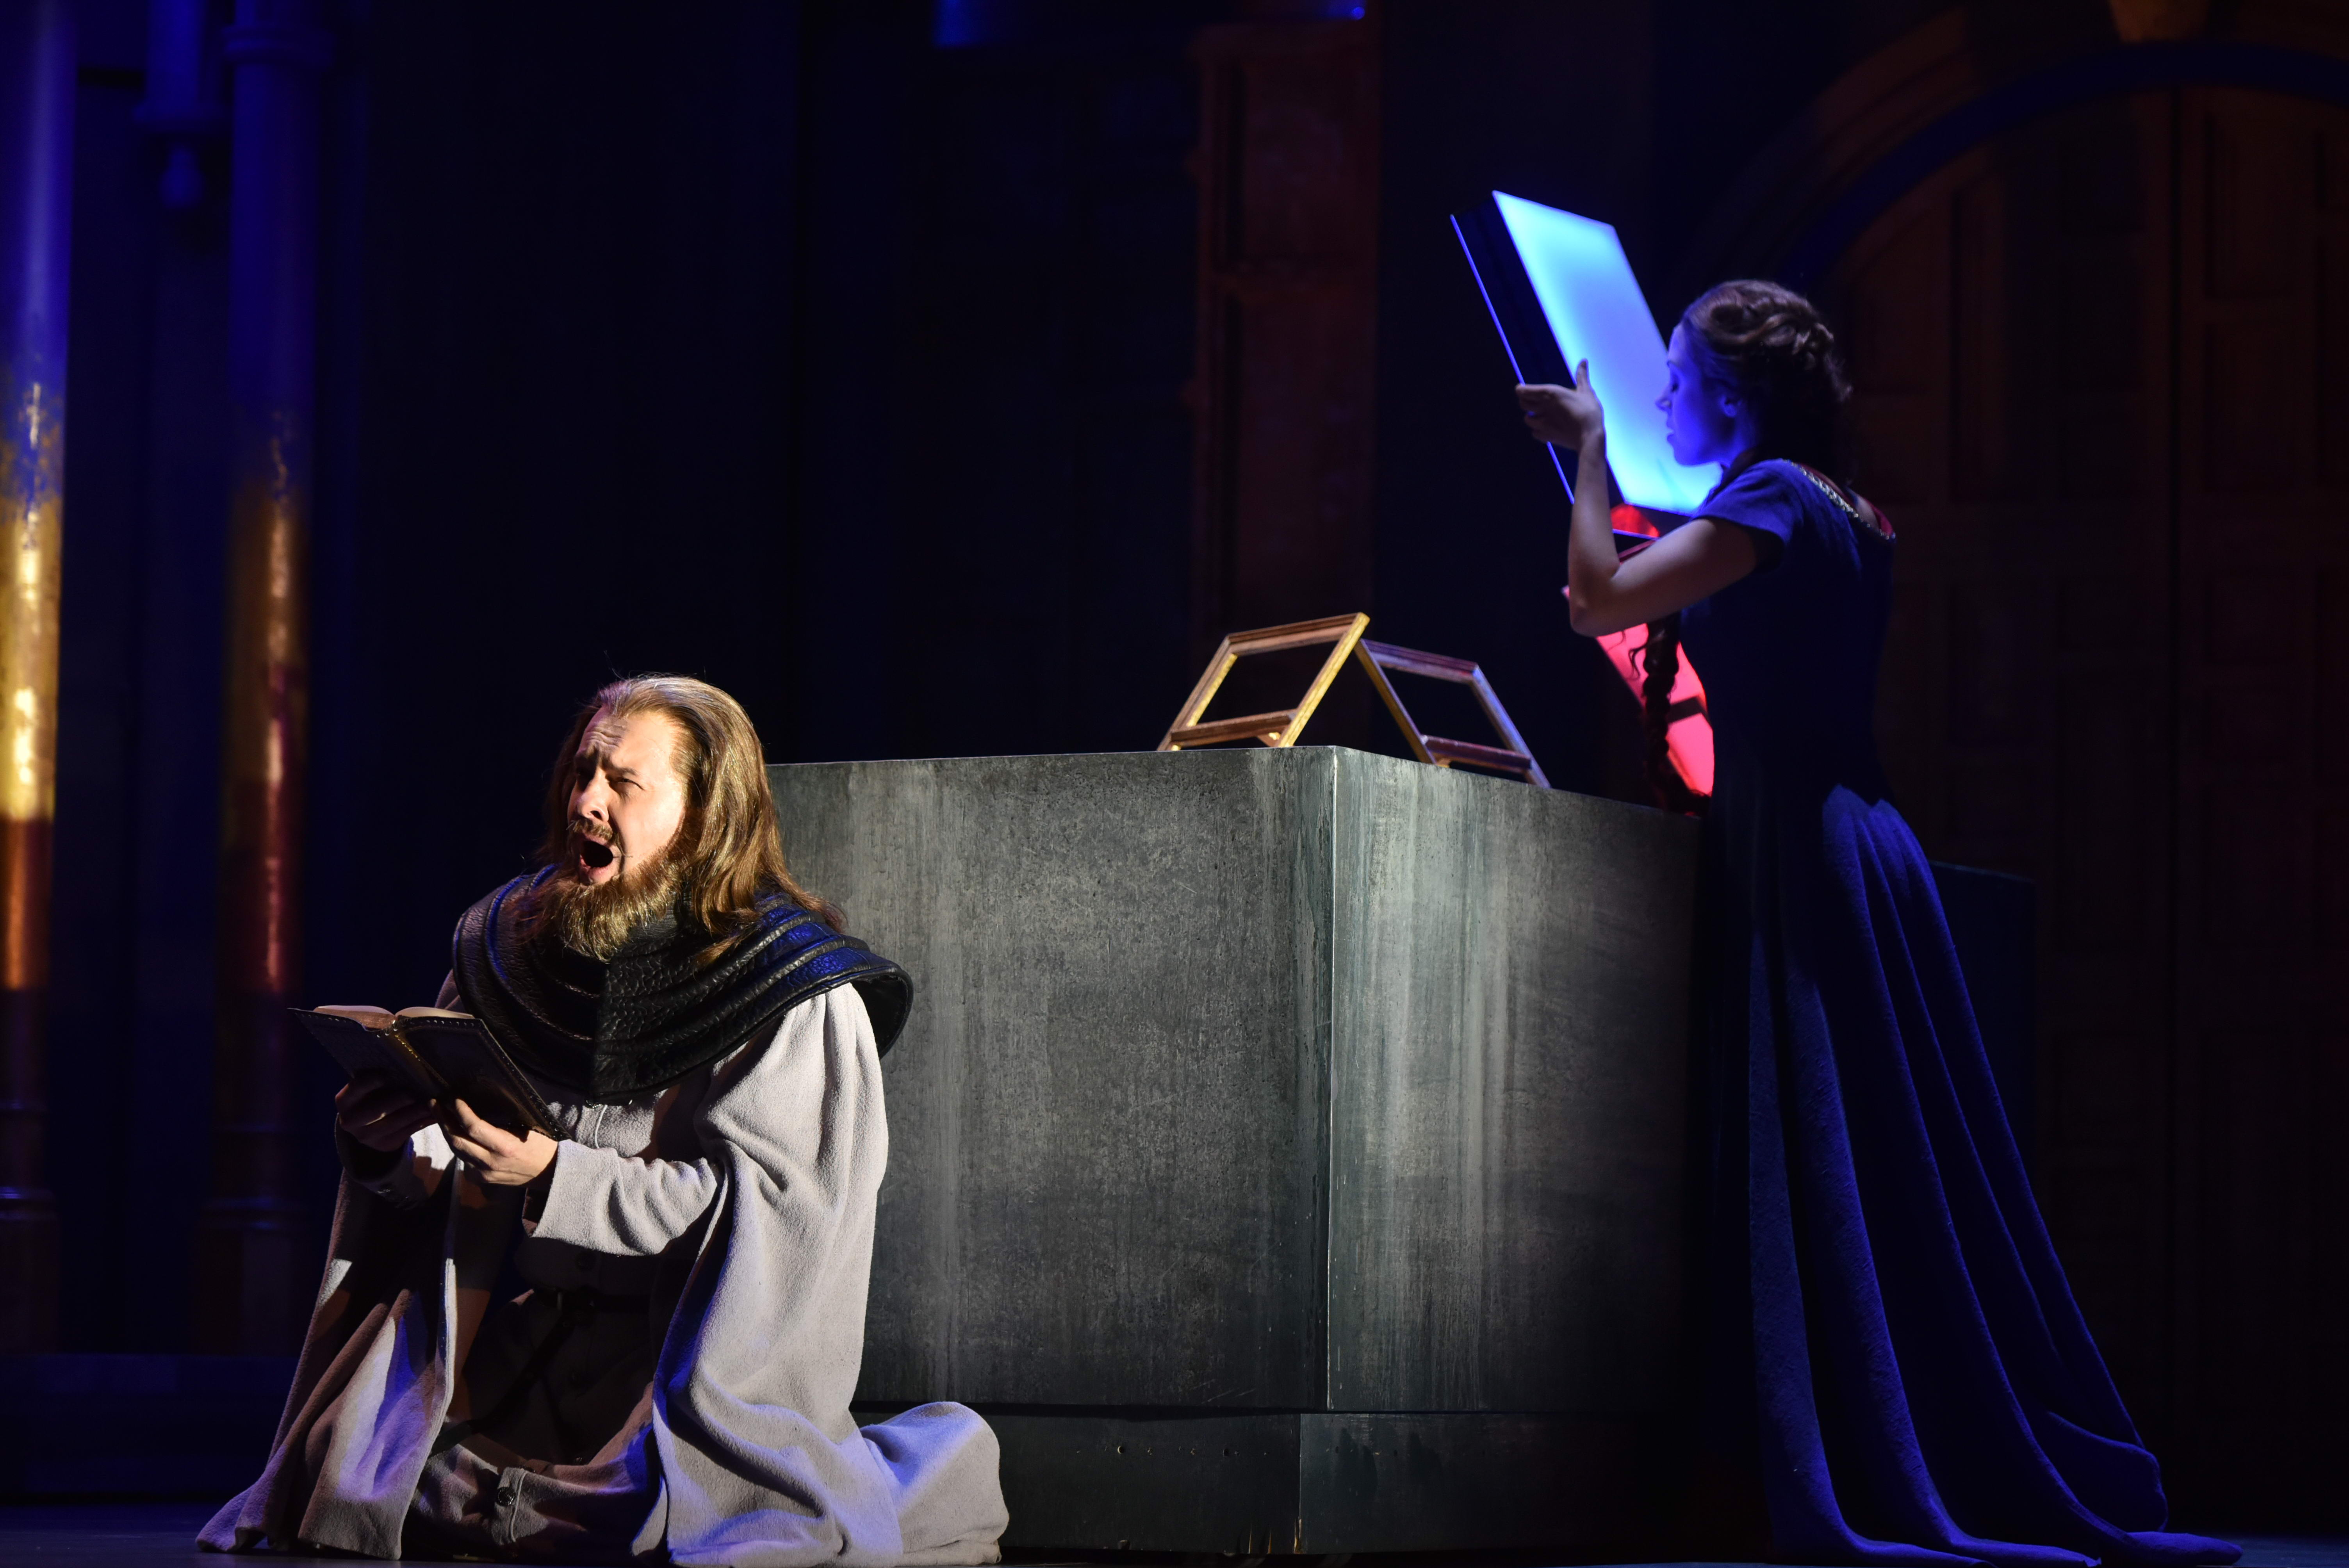 The Protector (baritone Mark Stone) and Agnès(soprano Lauren Snouffer), who, as a woman, has not been taught to read. (KELLY & MASSA for OPERA PHILADELPHIA)